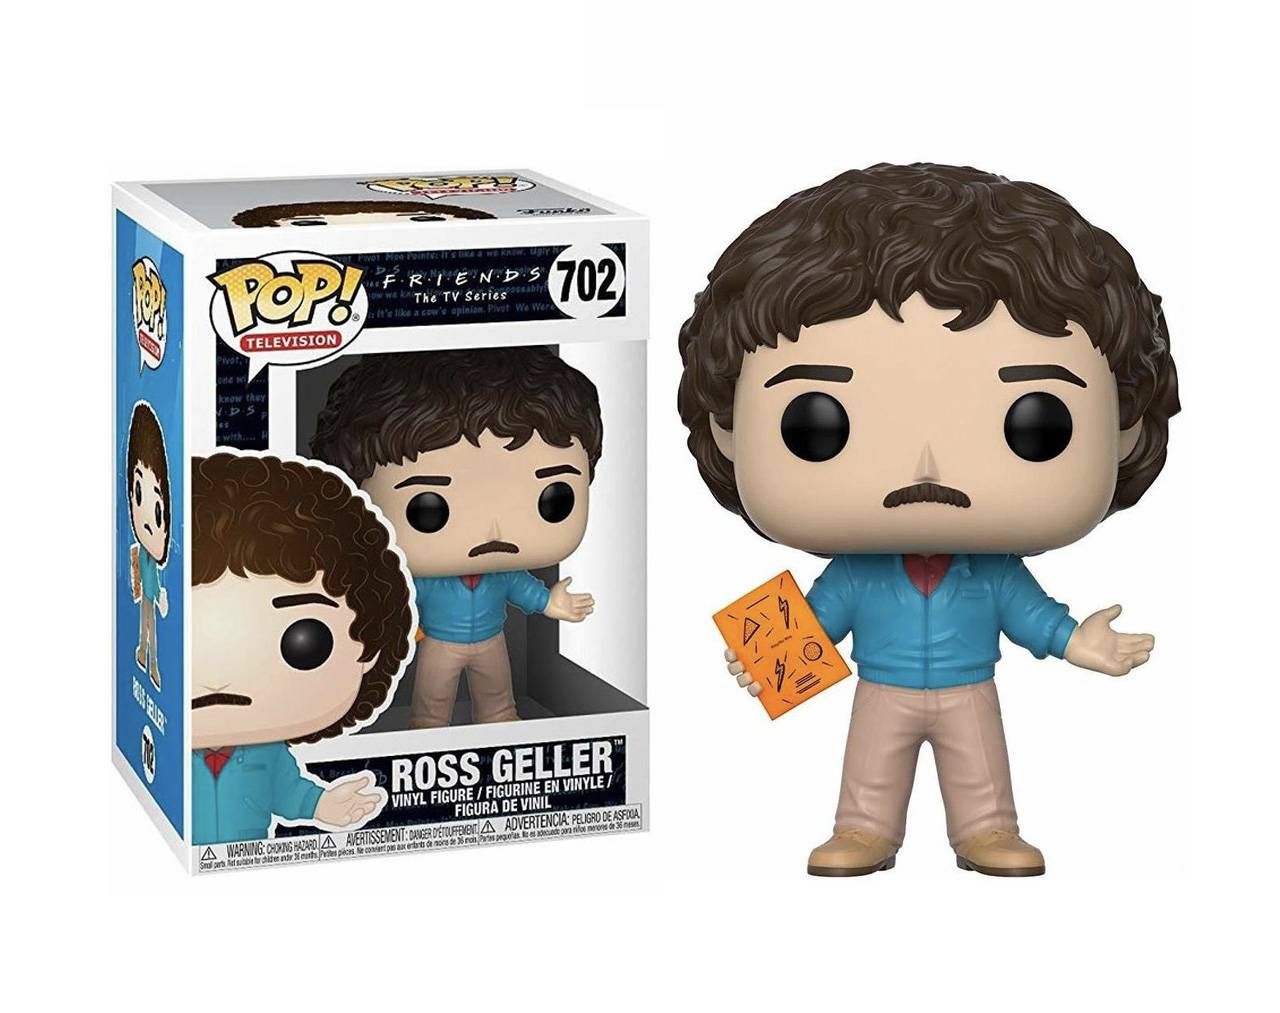 Ross Geller (80s) Pop! Vinyl